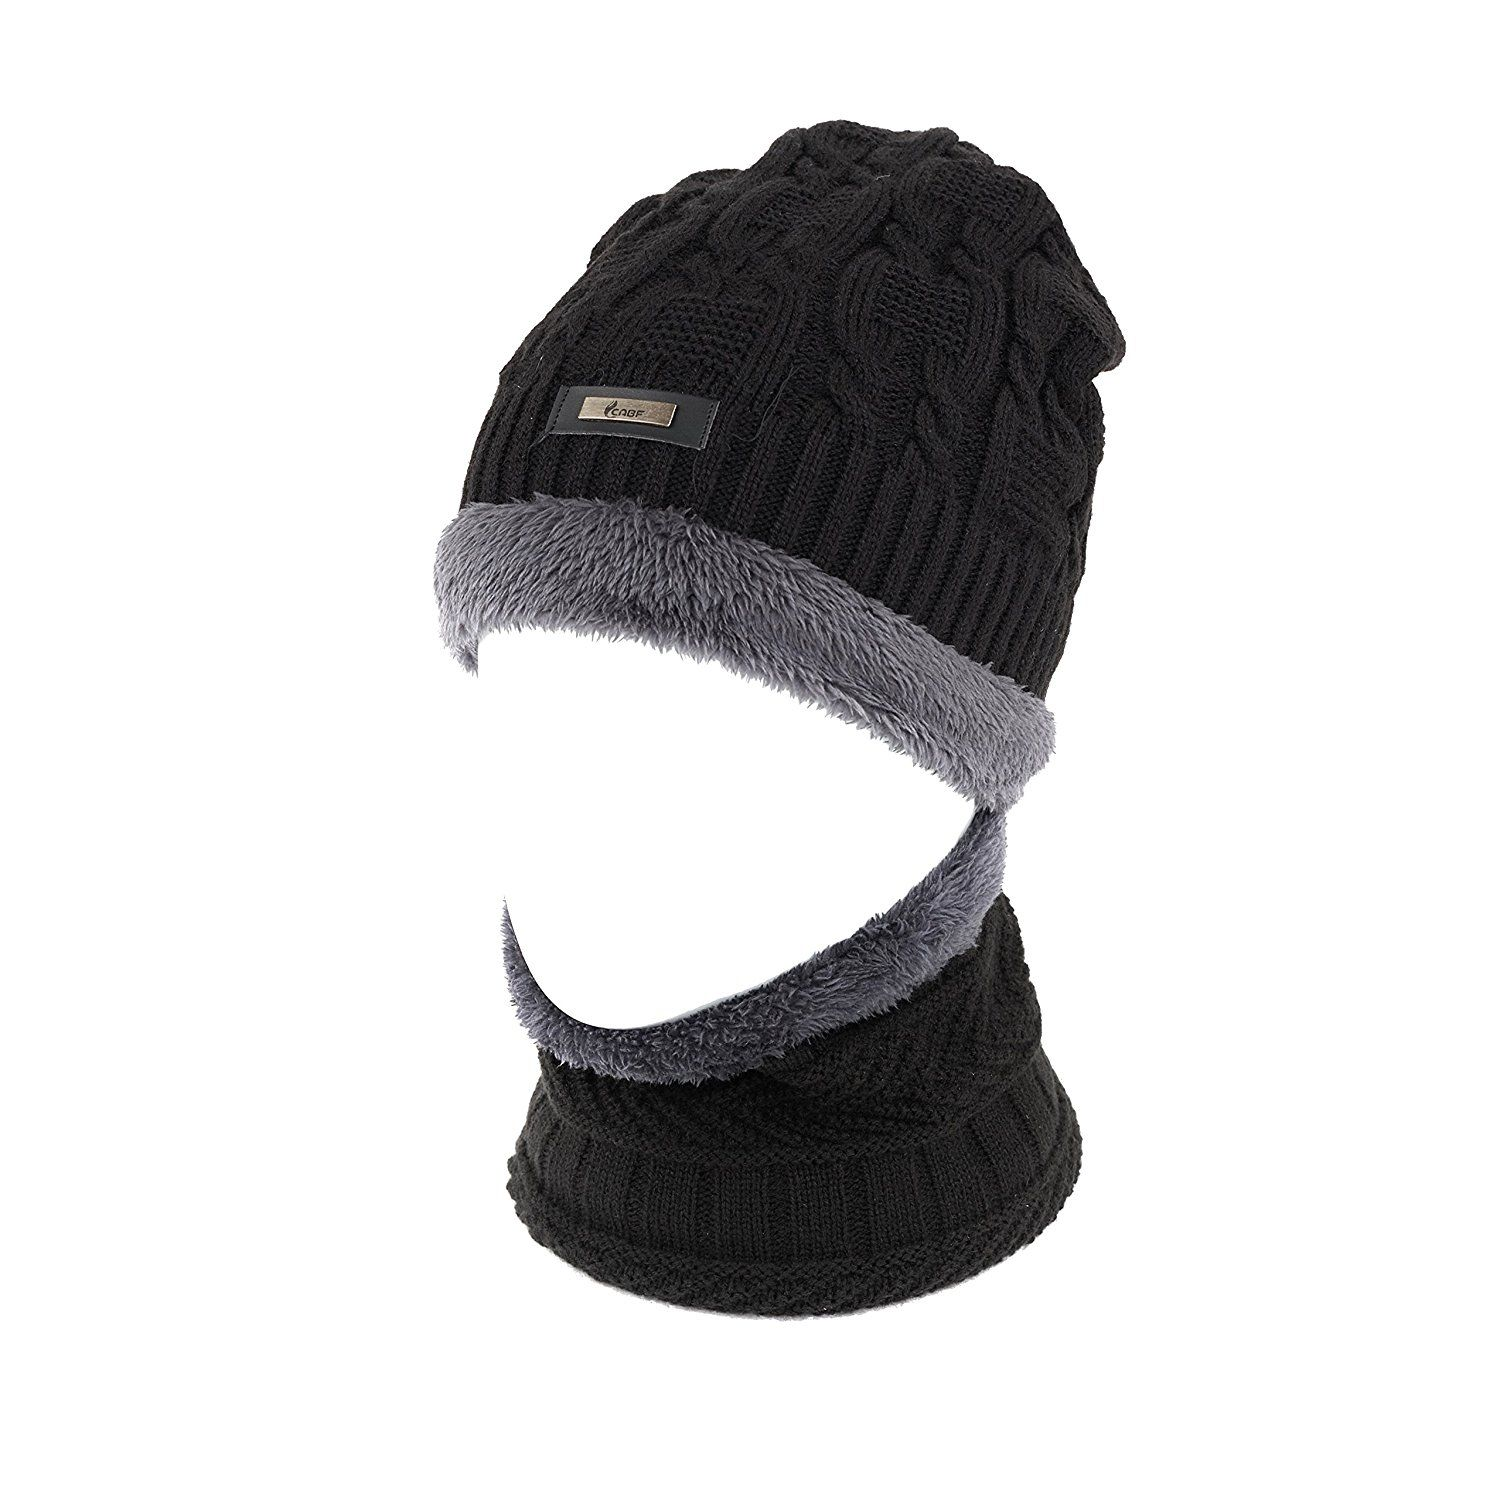 Lying Cat Hat for Men and Women Winter Warm Hats Knit Slouchy Thick Skull Cap Black